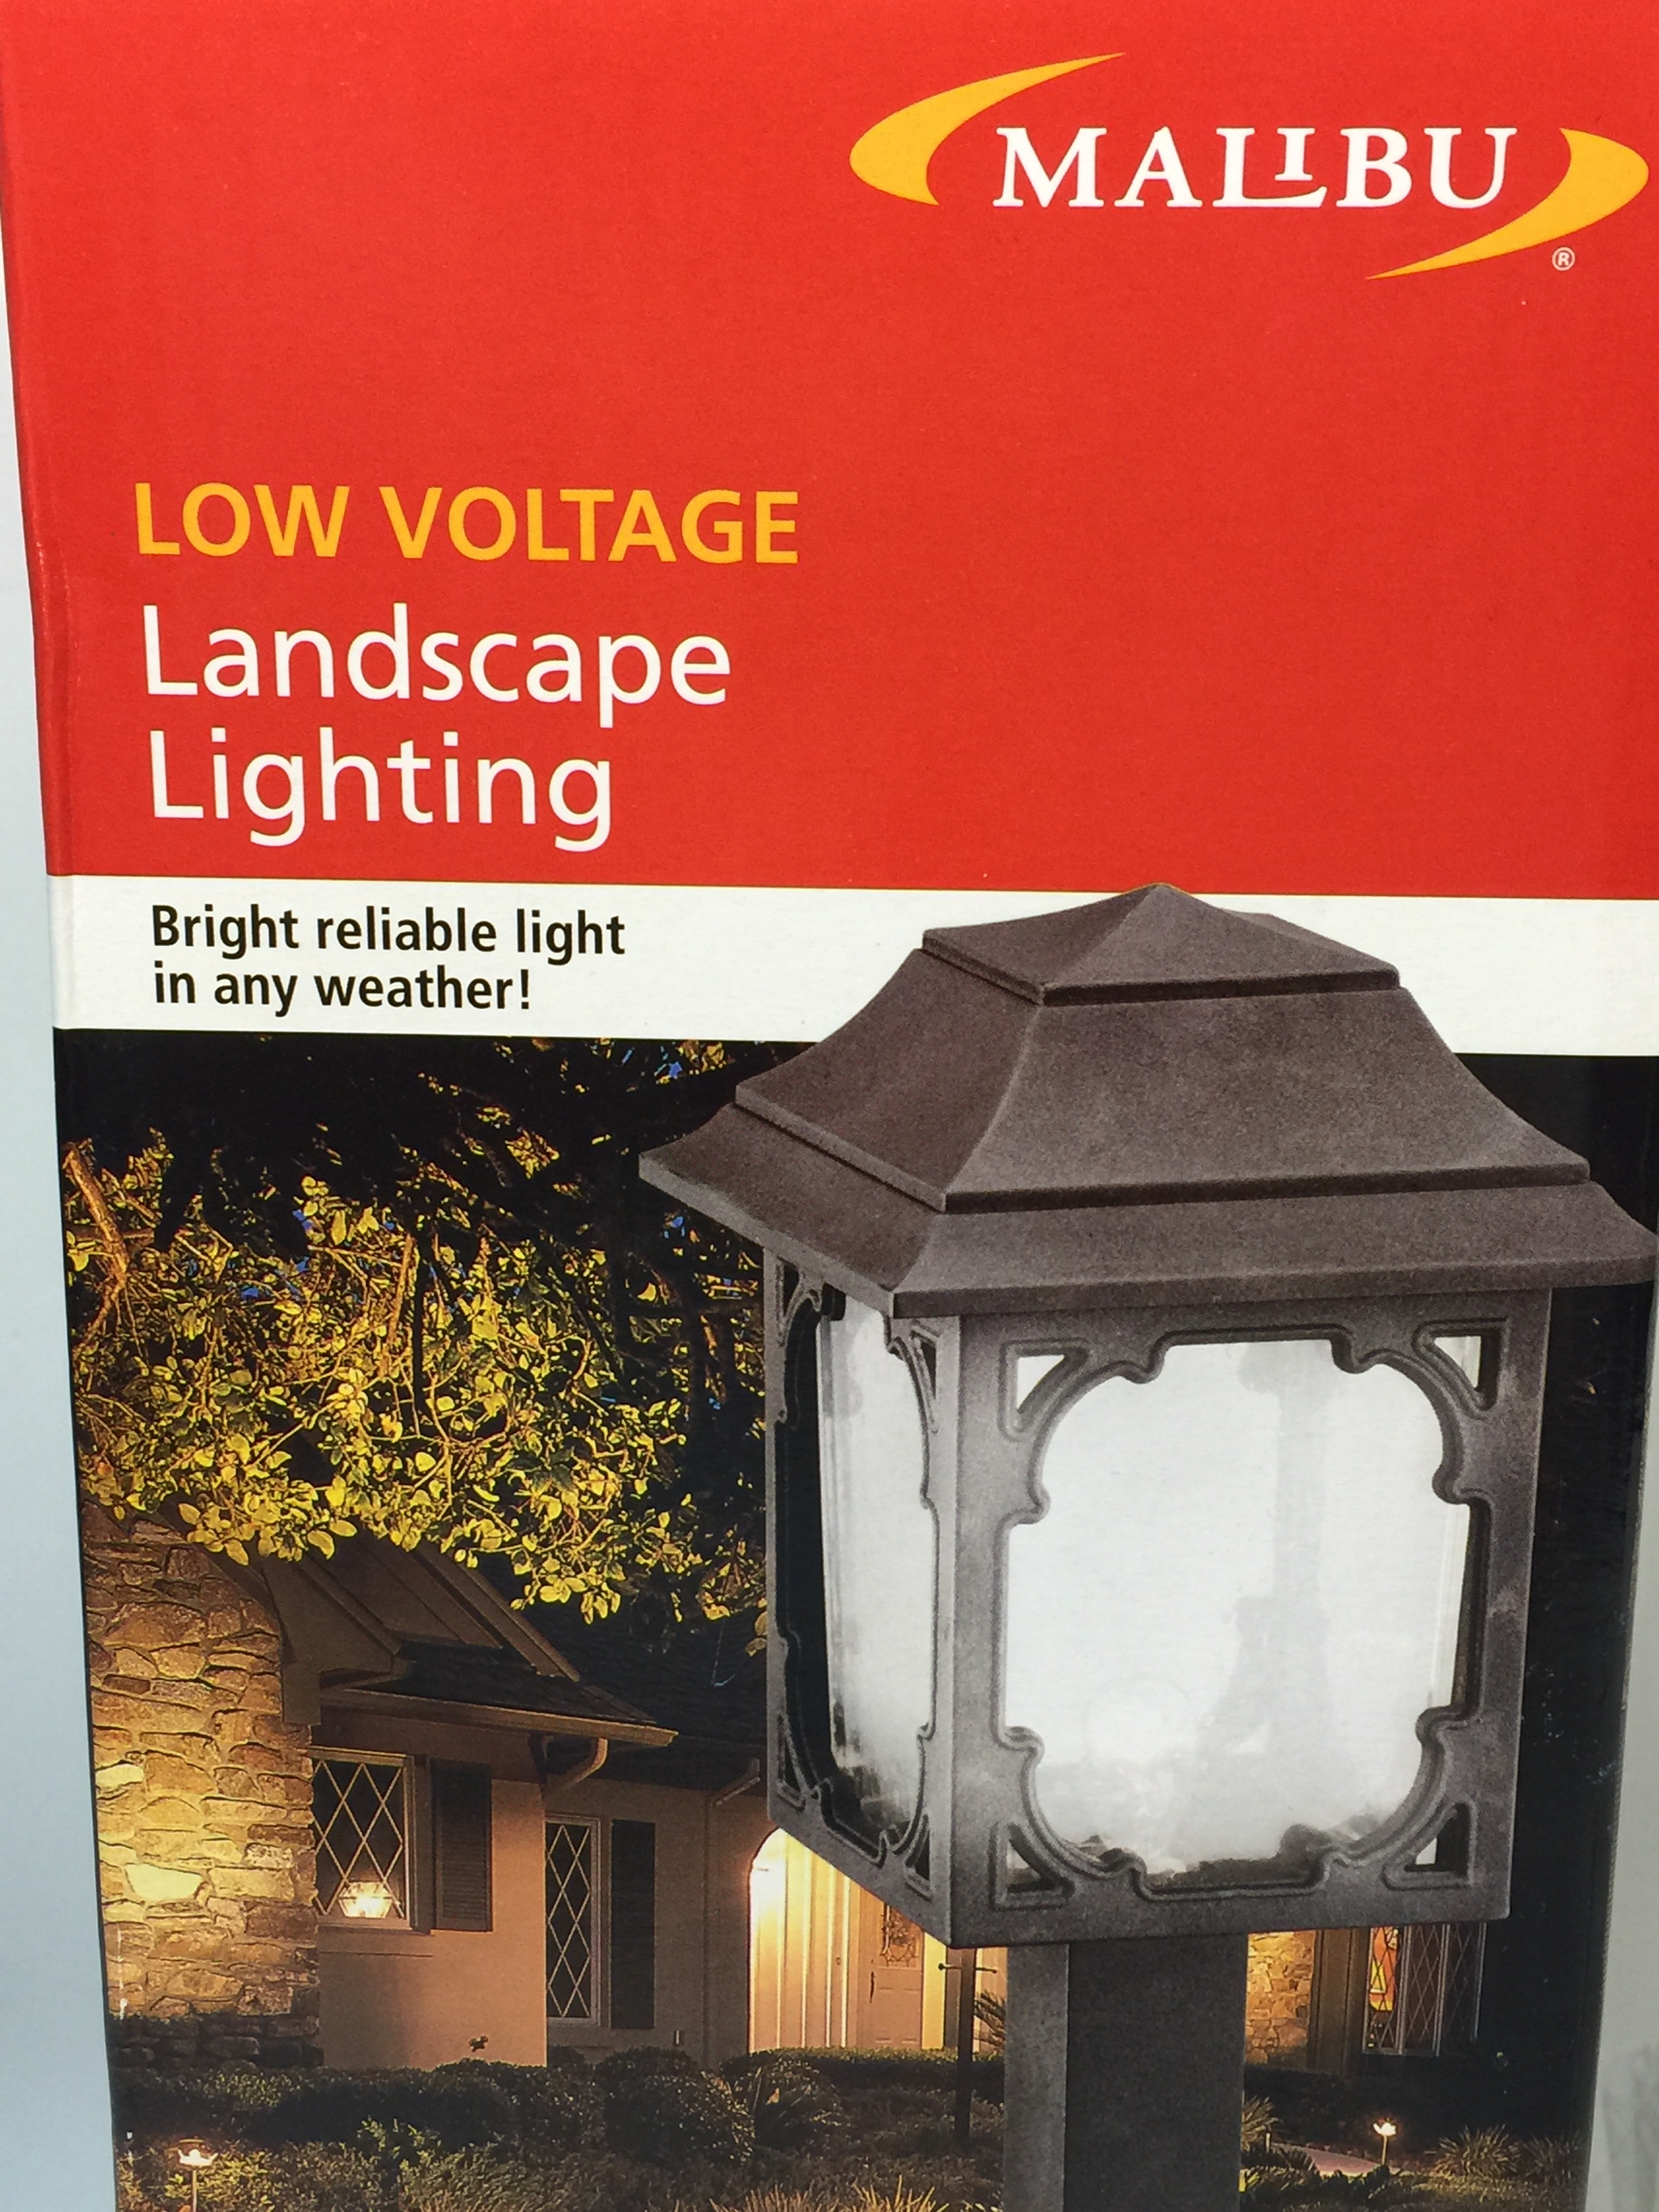 Low Voltage Landscape Lighting Images : Malibu low voltage landscape lighting watt model cl ob